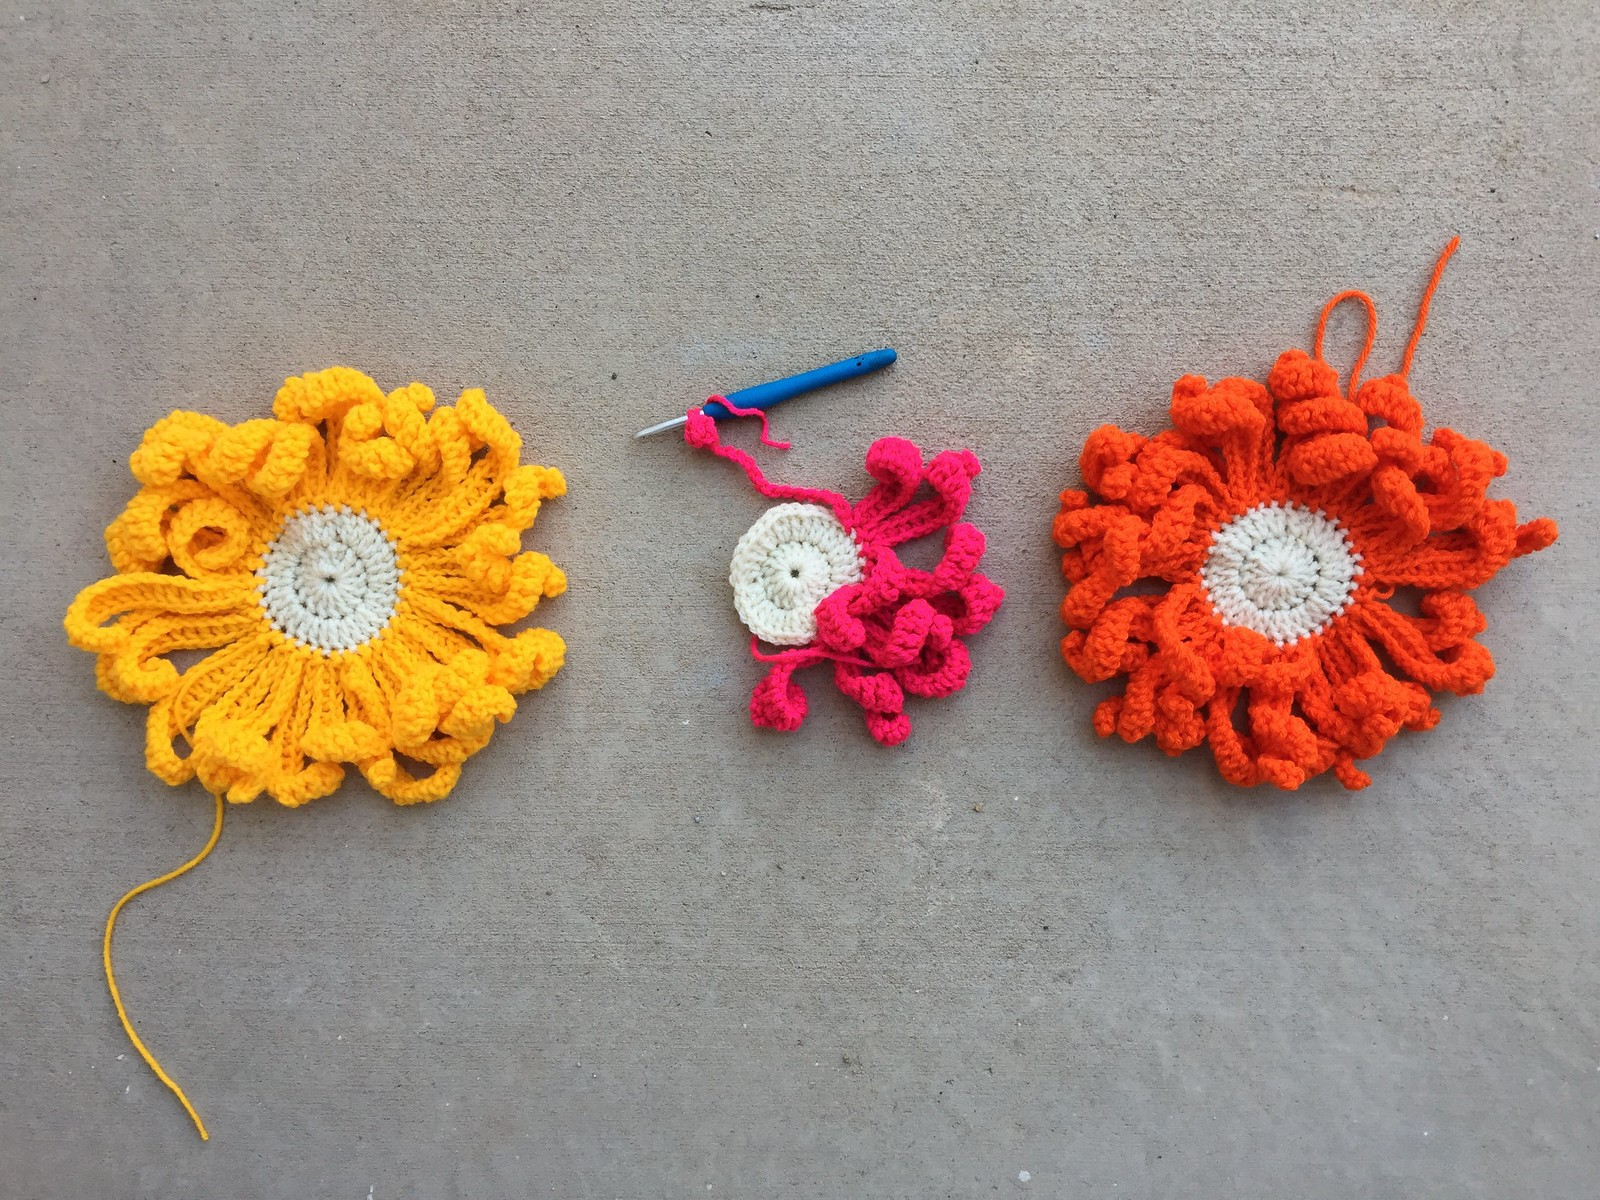 Two-and-a-half great big, bright, crochet flowers